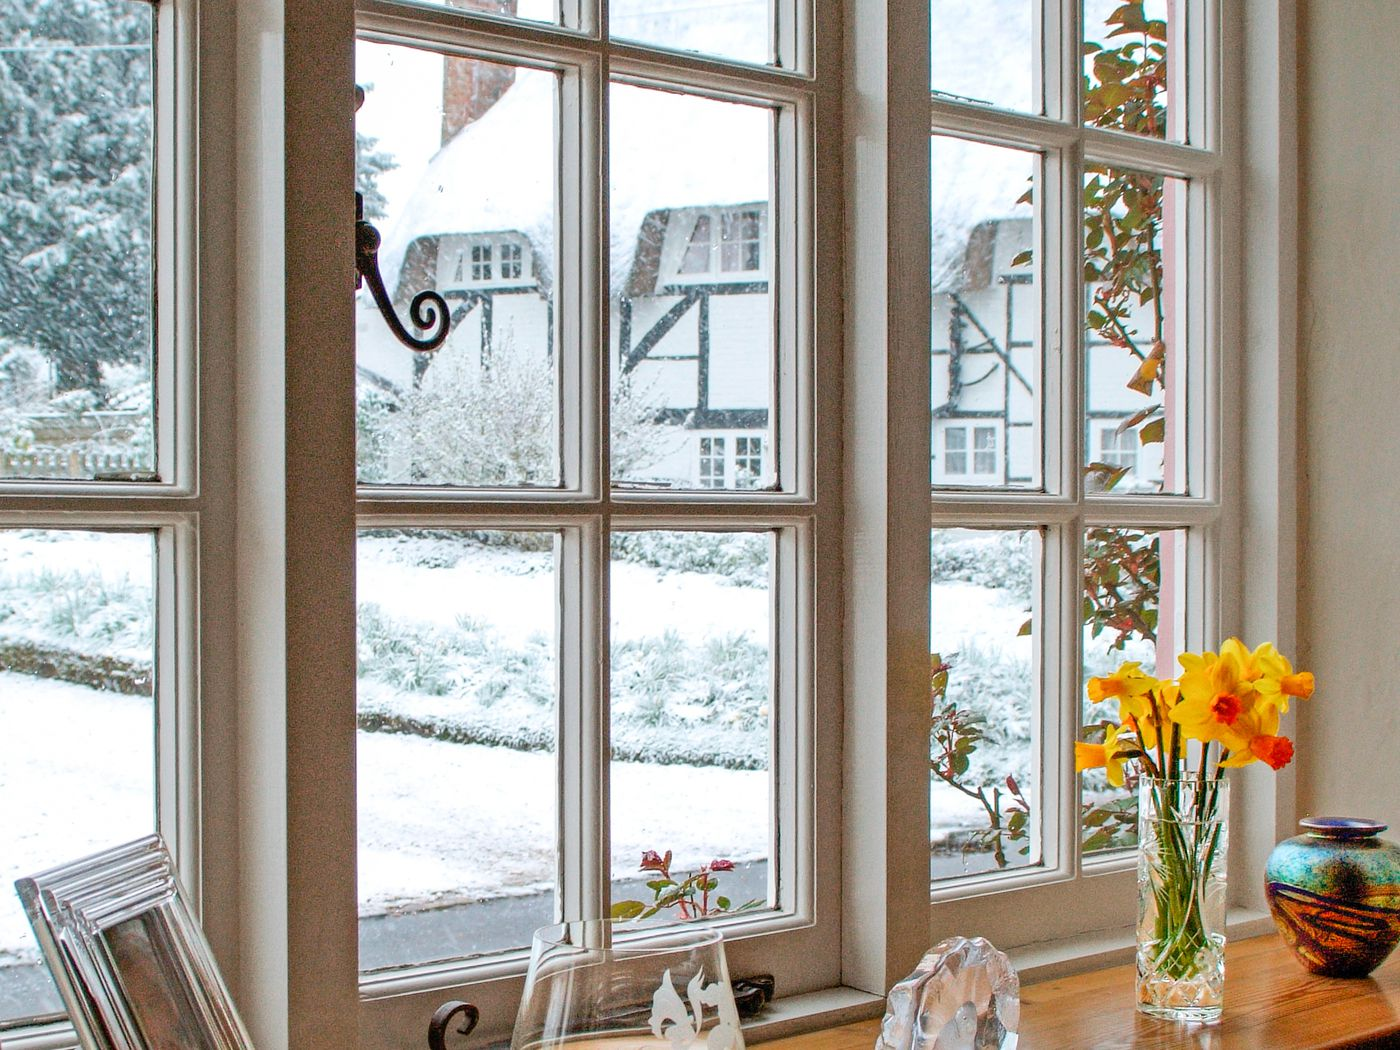 21 Ways to Fix Drafty Windows and Doors - This Old House